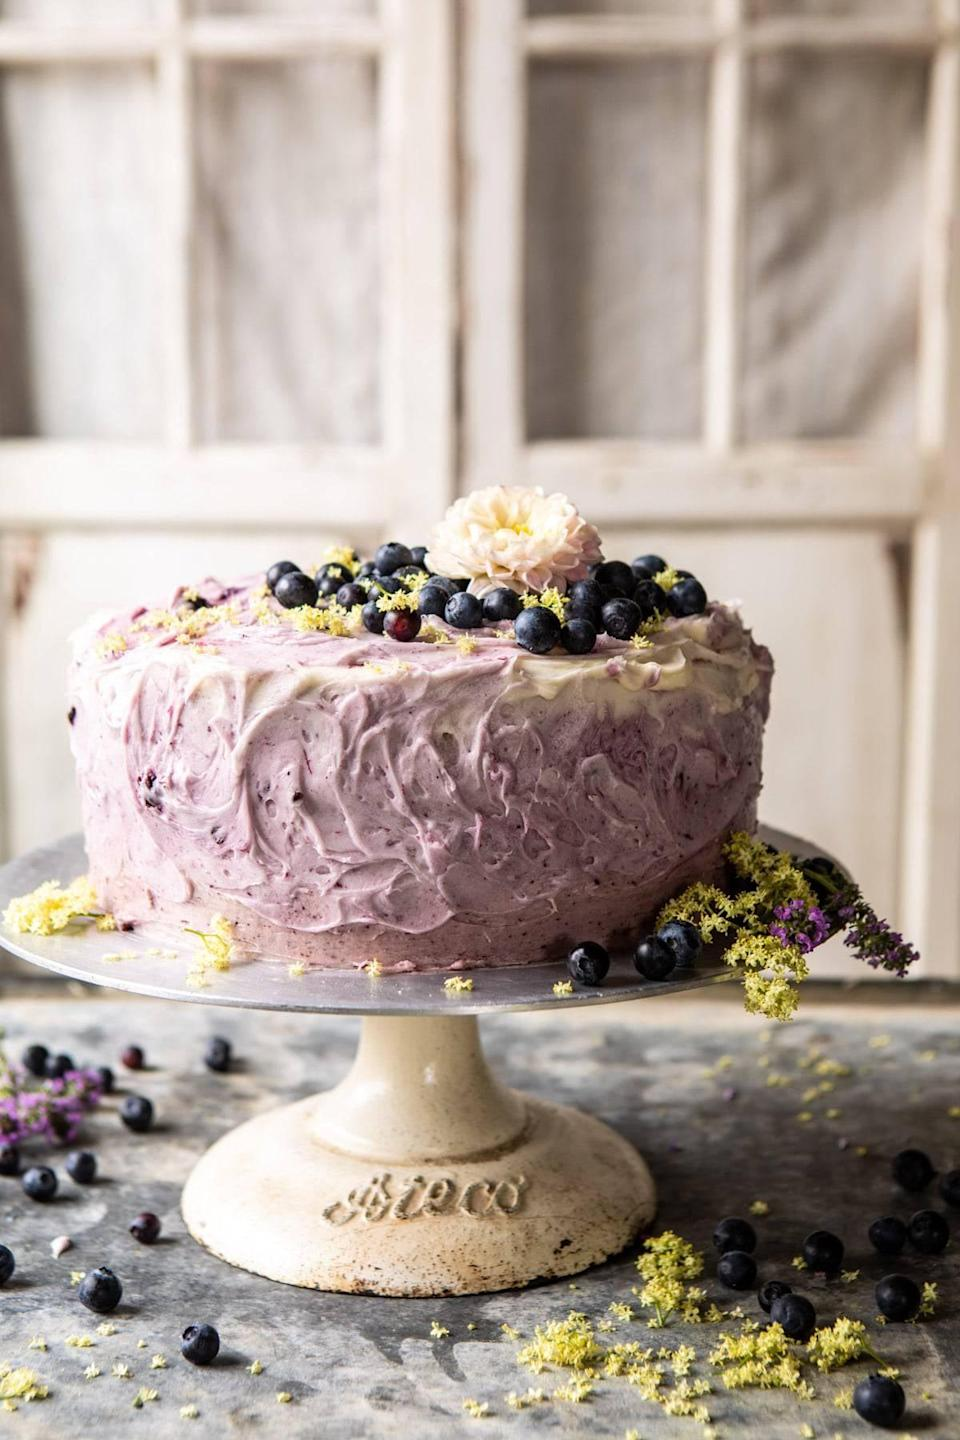 "<p>Want to make something fruity, sweet, <em>and</em> impressive? This cake is it. Imagine: three layers of light lemon cake swirled with a mix of fresh blueberries and blueberry jam. Oh, yeah.</p> <p><strong>Get the recipe</strong>: <a href=""https://www.halfbakedharvest.com/bursting-blueberry-lemon-layer-cake/"" class=""link rapid-noclick-resp"" rel=""nofollow noopener"" target=""_blank"" data-ylk=""slk:bursting blueberry lemon layer cake"">bursting blueberry lemon layer cake</a></p>"